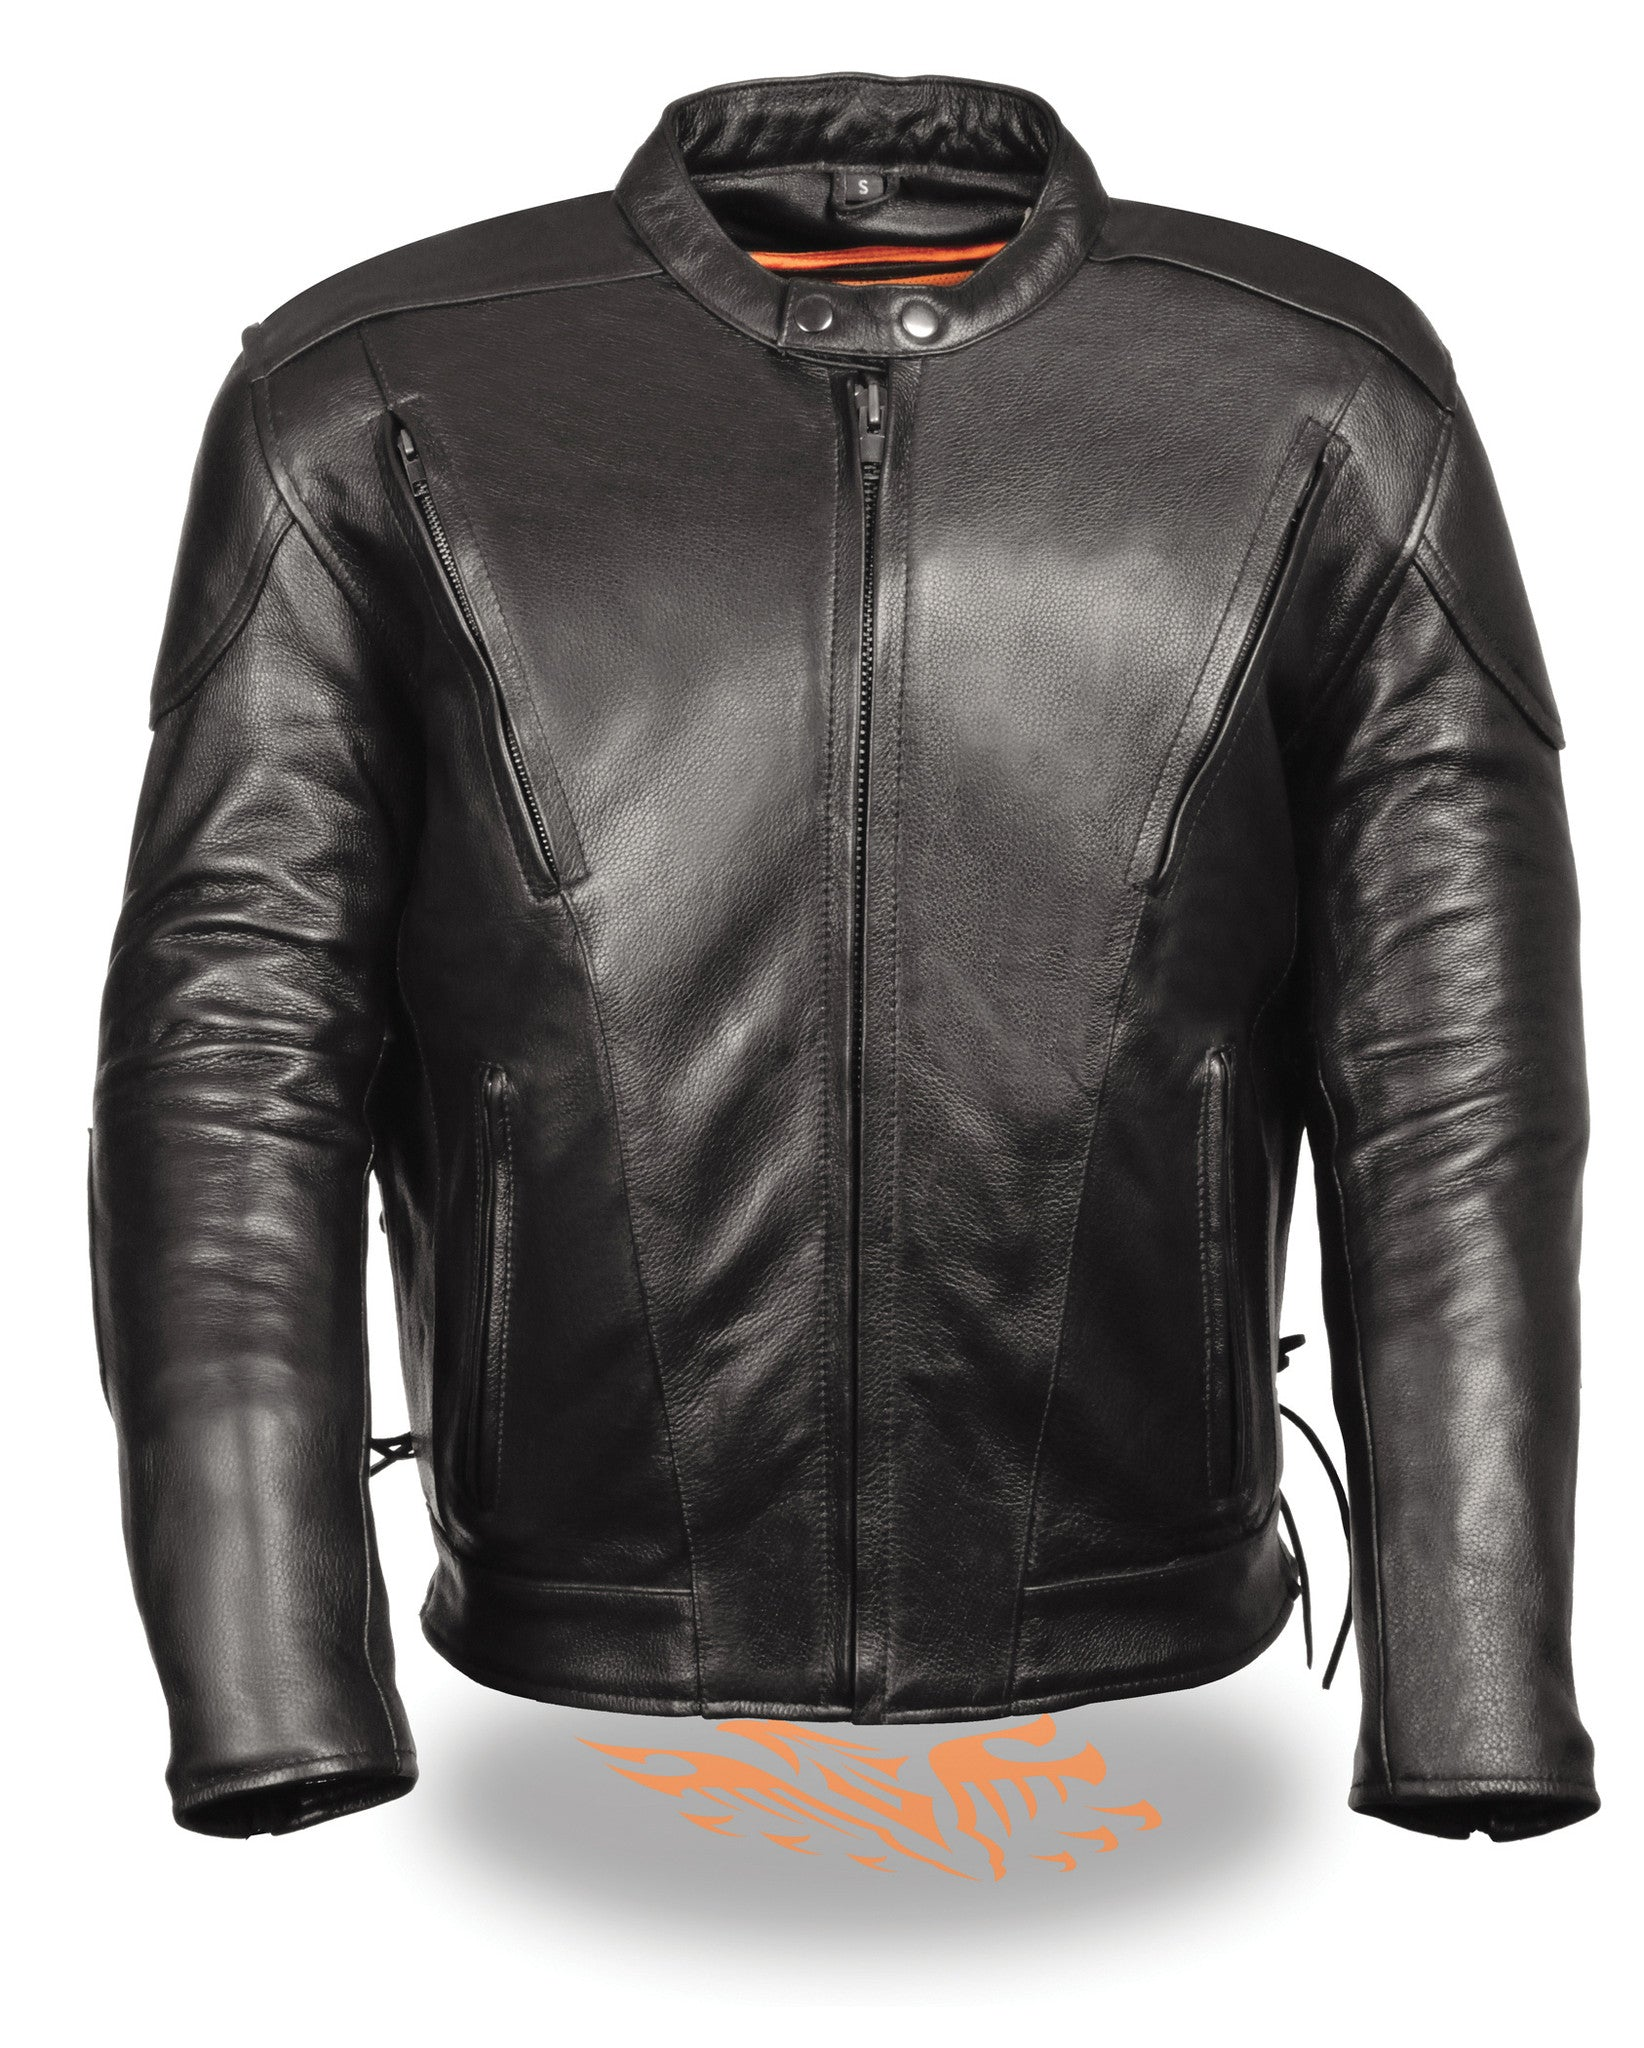 MEN'S MOTORCYCLE  LEATHER RIDING JACKET VENTED W/ SIDE LACES